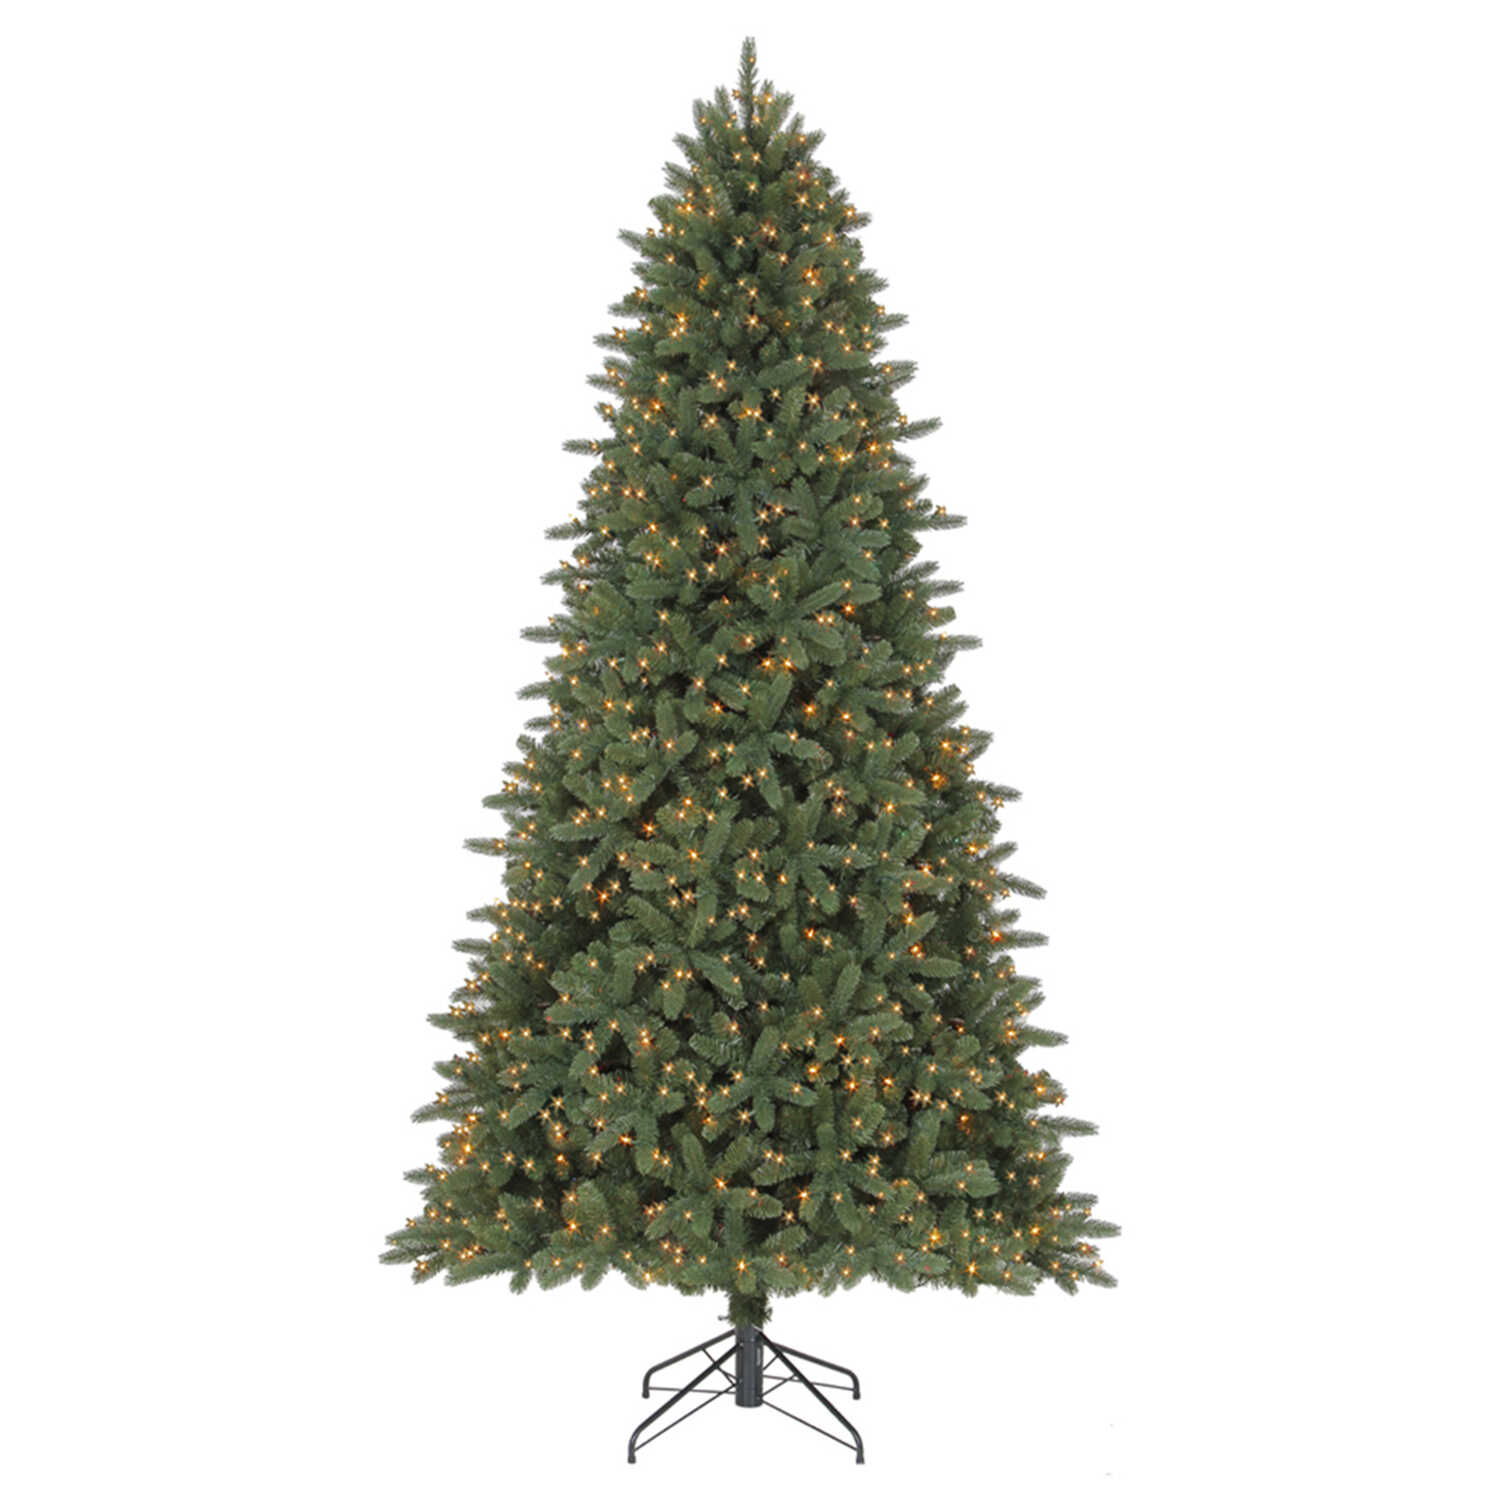 Celebrations  Clear  Prelit 12 ft. Grand Fir  Artificial Tree  1500 lights 4797 tips